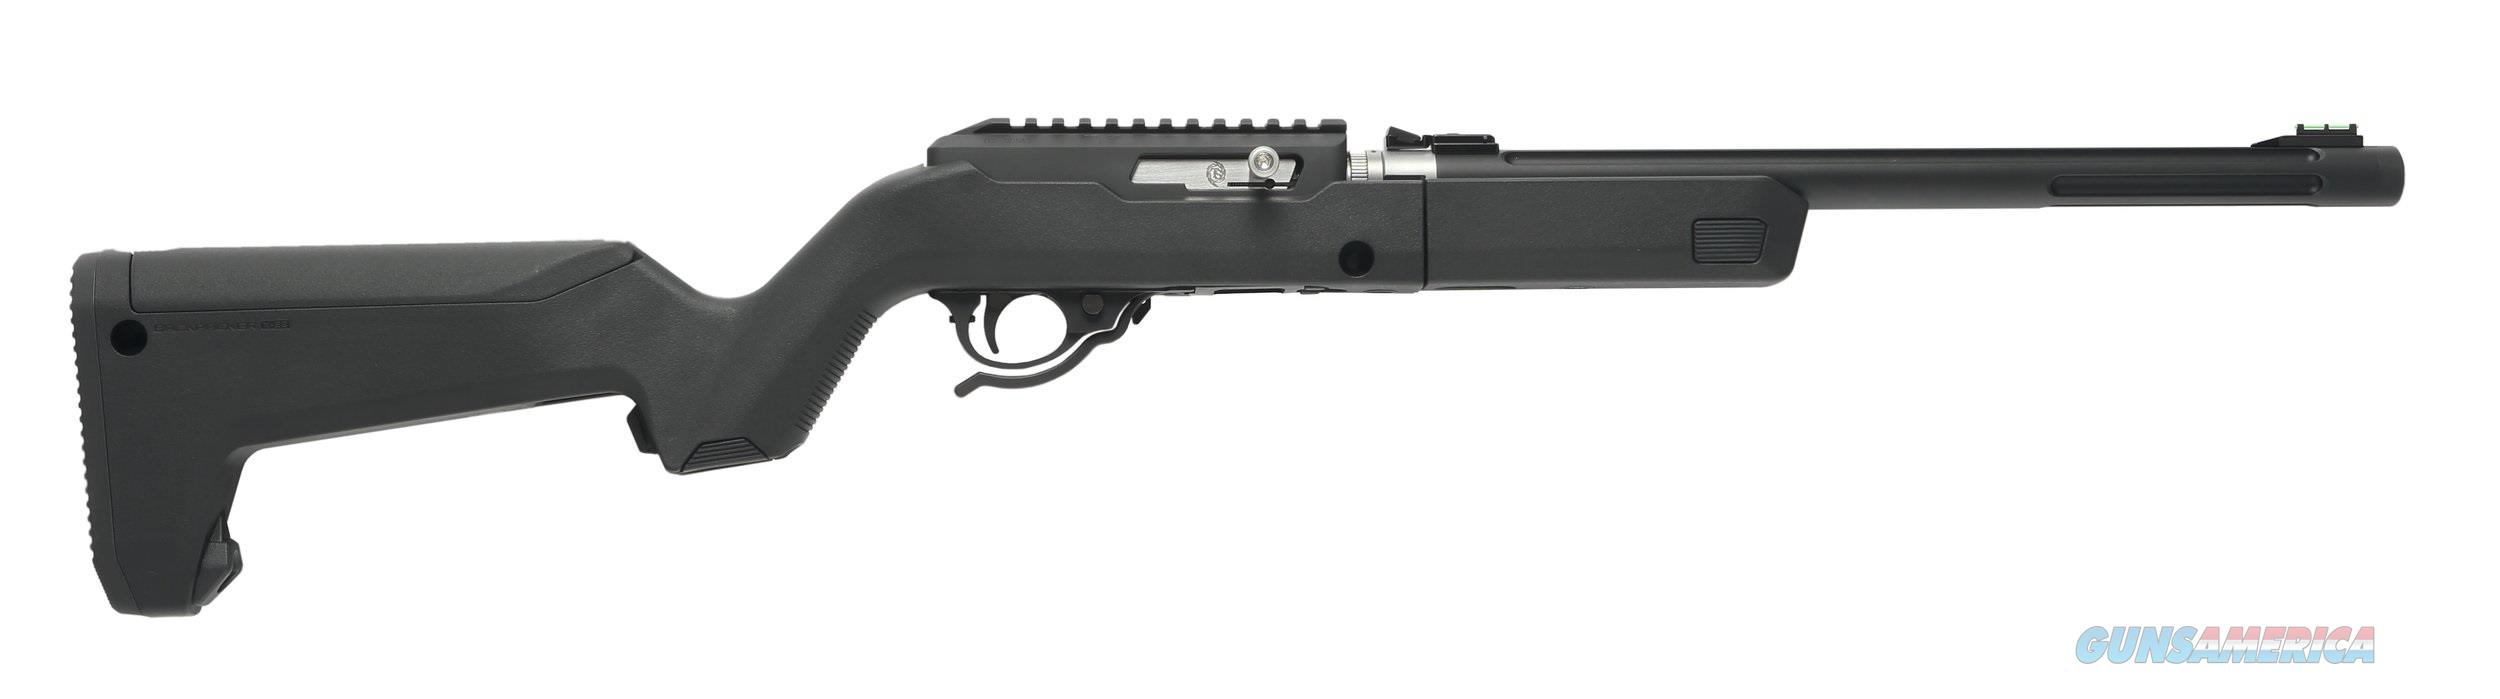 "Tactical Solutions X-Ring Takedown .22 LR 16.5"" Black ATD-MB-B-B-BLK  Guns > Rifles > Ruger Rifles > 10-22"